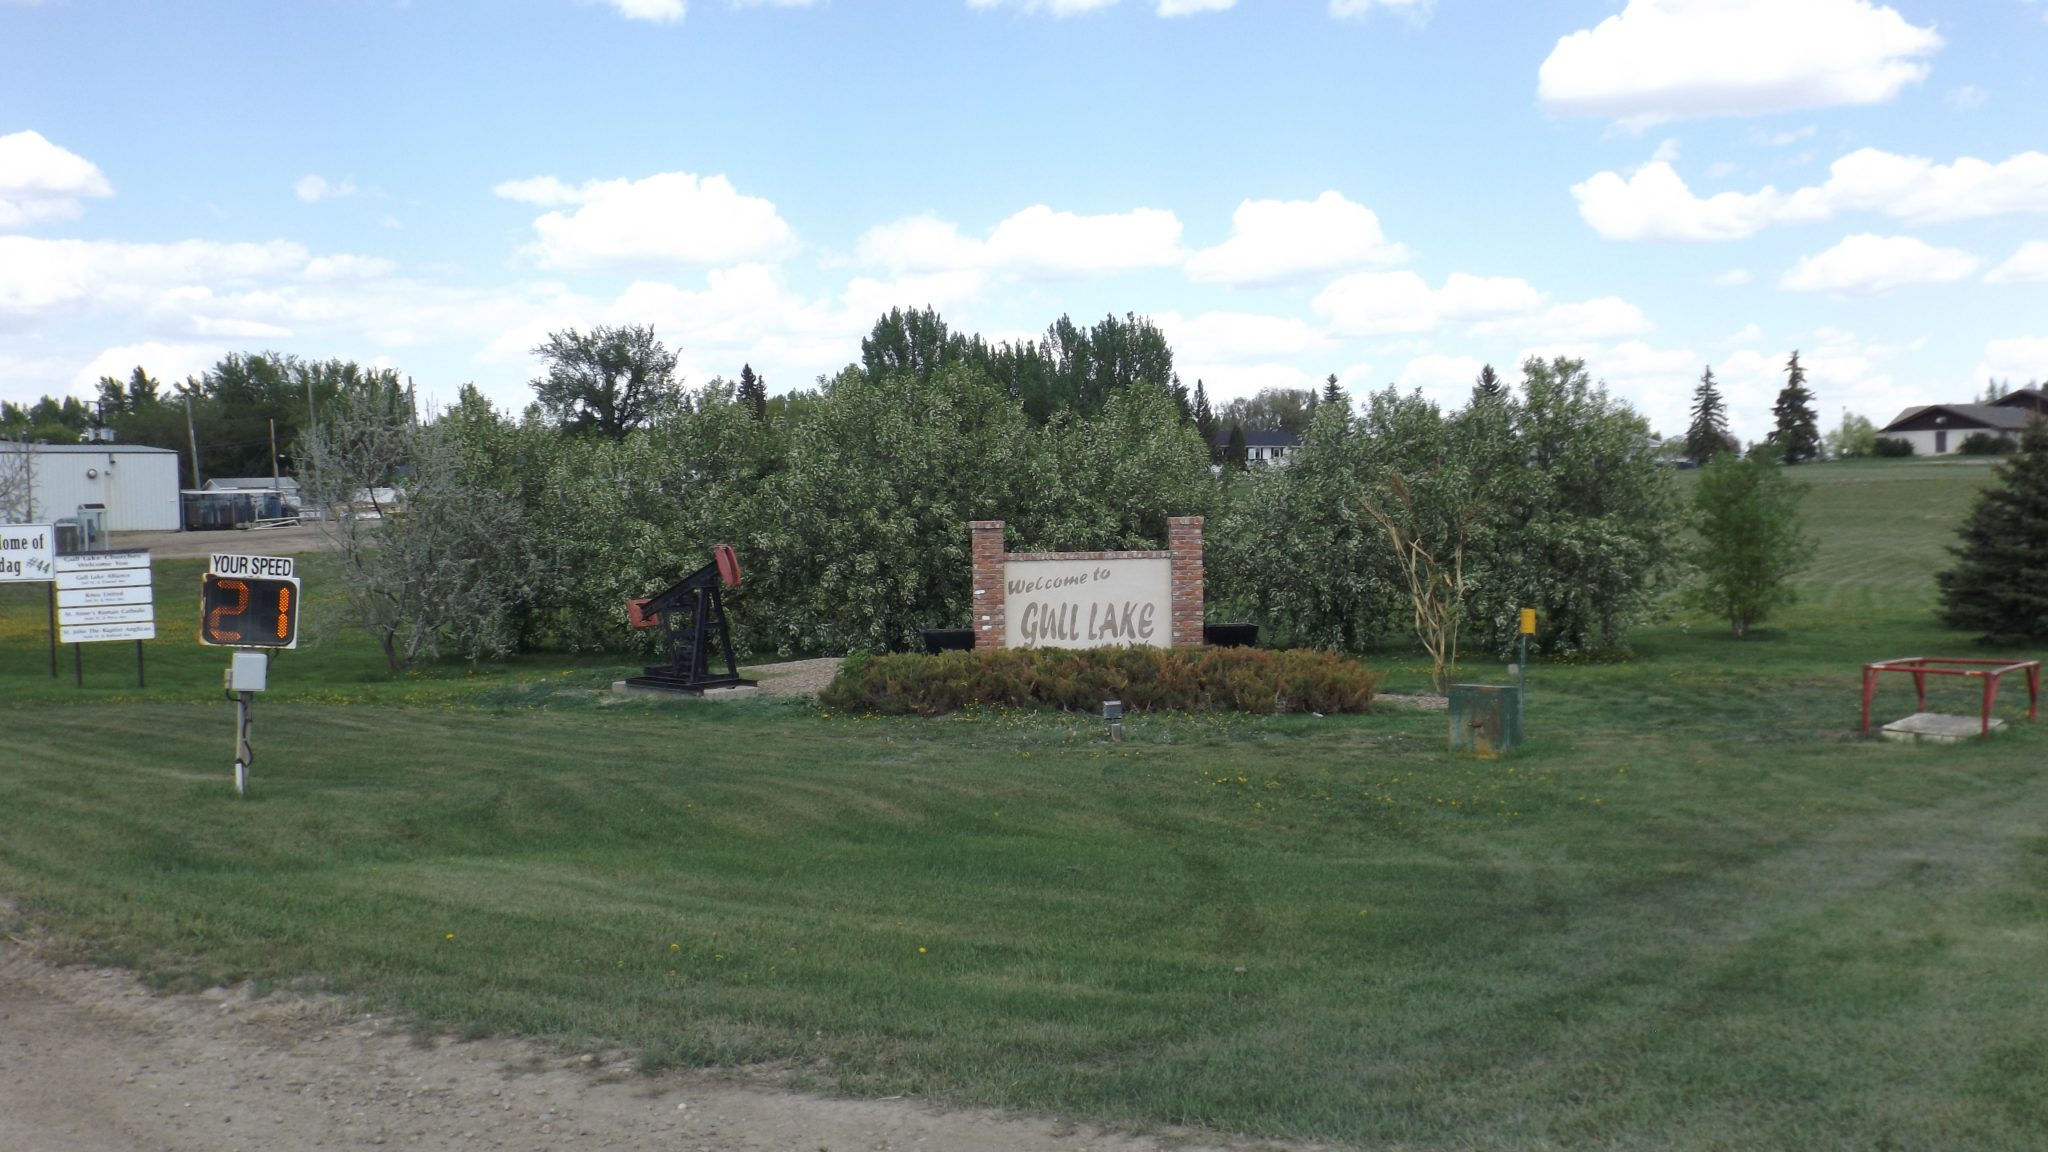 BIG Thank you to Bev Potter & Shirley Weinbender GULL LAKE Town Beautification  Mayor's Report